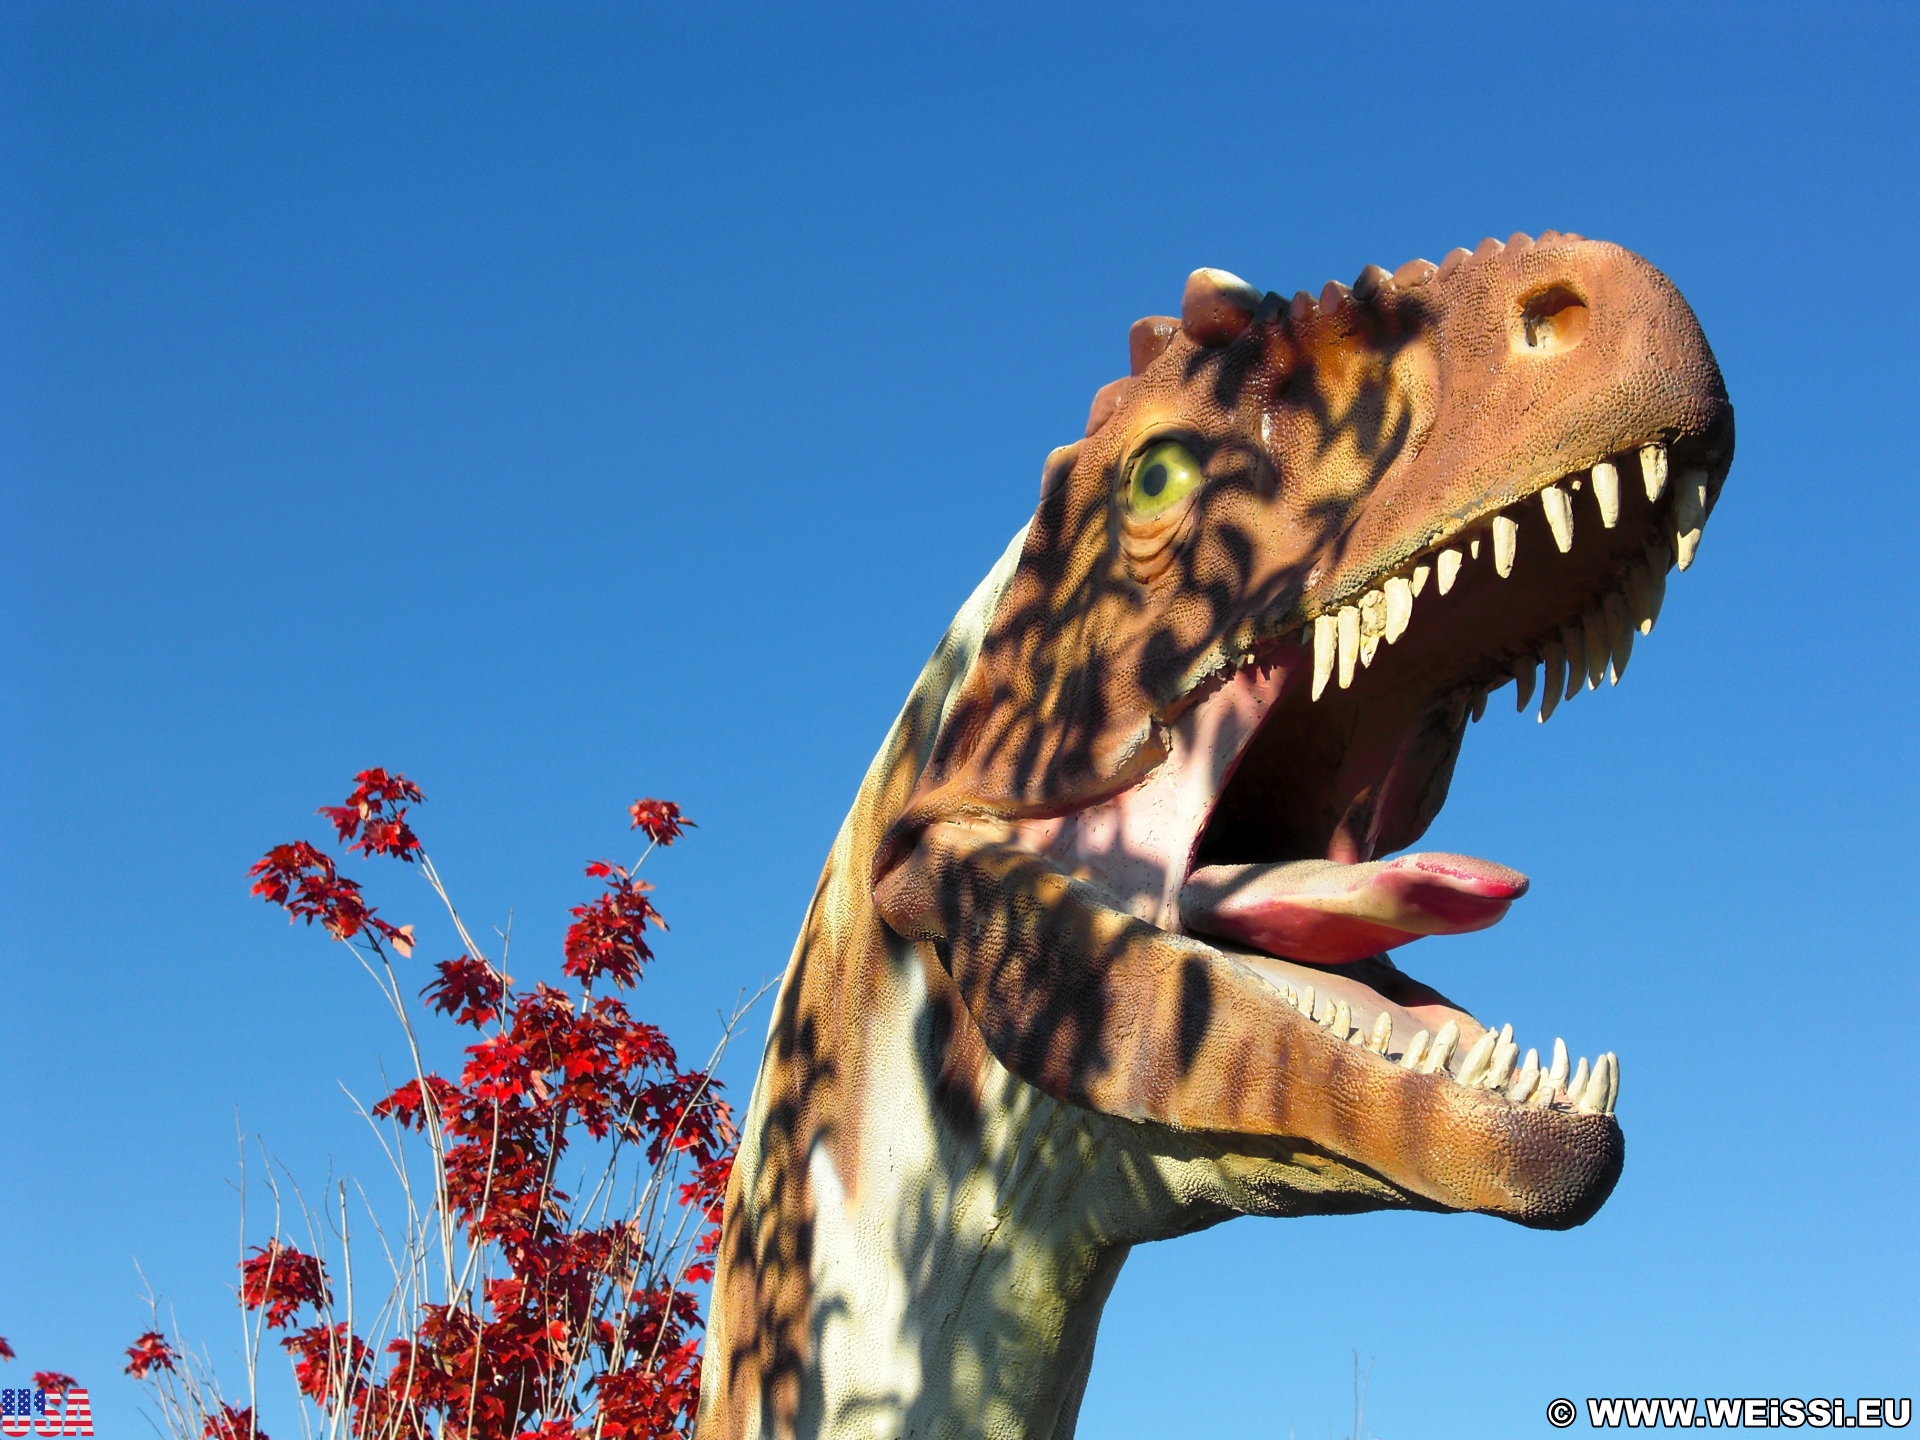 15. Tag, Dinoland - Dinosaur National Monument